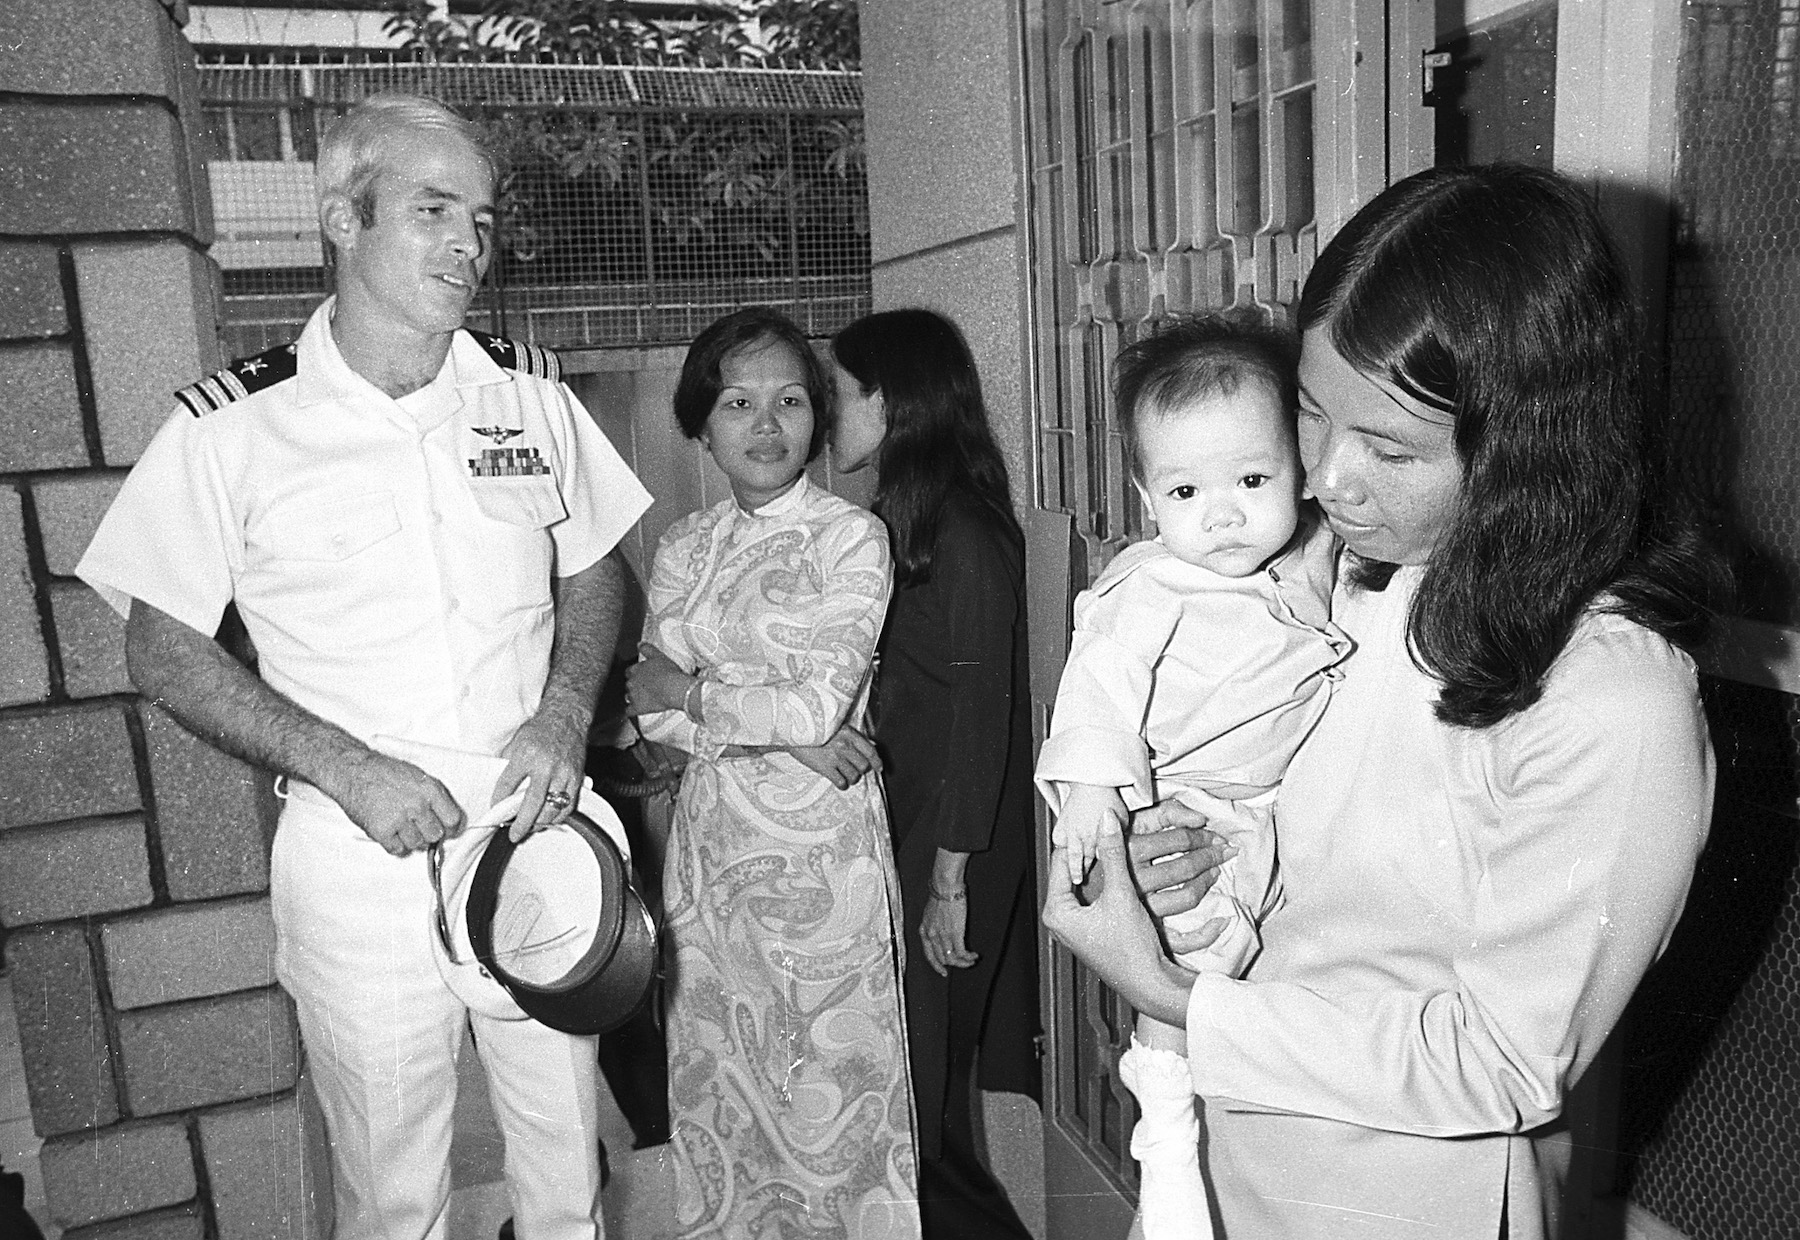 <div class='meta'><div class='origin-logo' data-origin='AP'></div><span class='caption-text' data-credit='AP Photo/Dang Van Phuoc'>U.S. Navy Commander John S. McCain, a guest of the South Vietnamese government, visits the Holt orphanage in Saigon, Vietnam, on Oct. 30, 1974.</span></div>